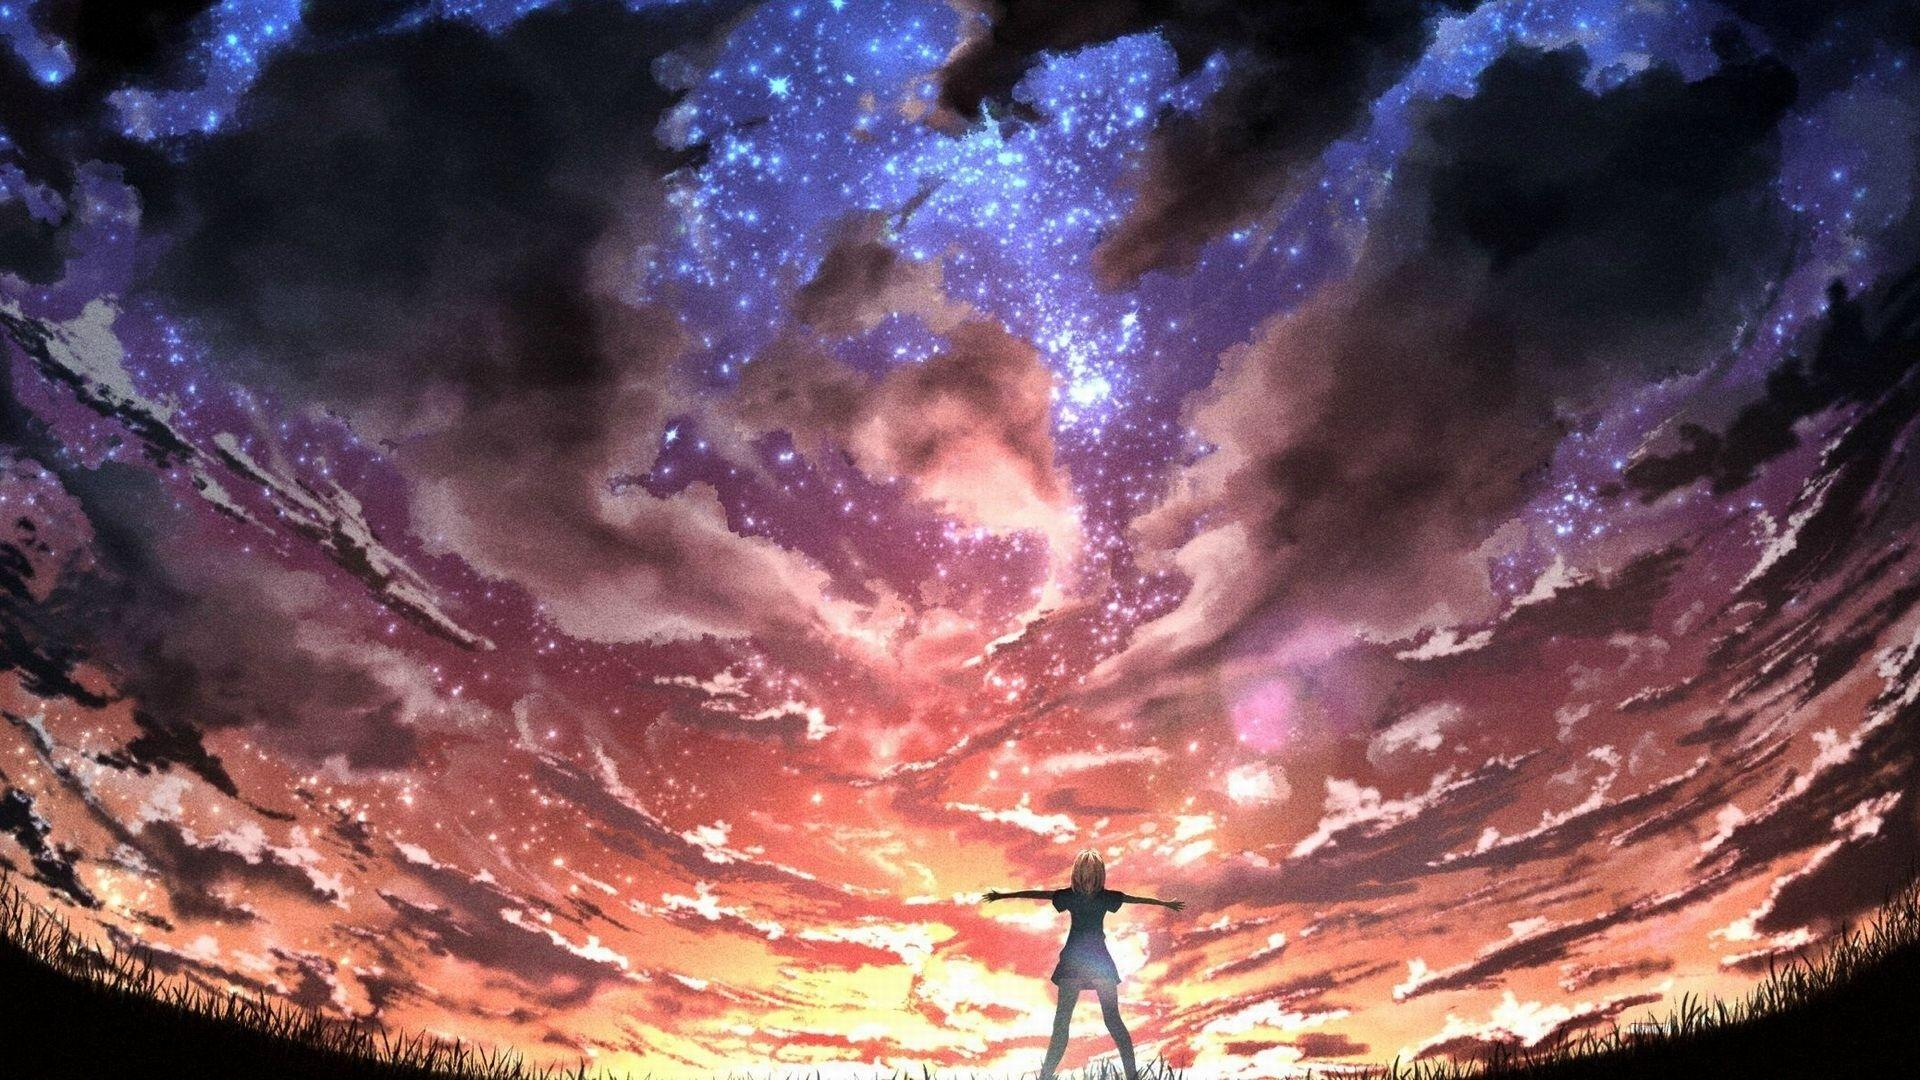 Anime Space Wallpapers Wallpaper Cave